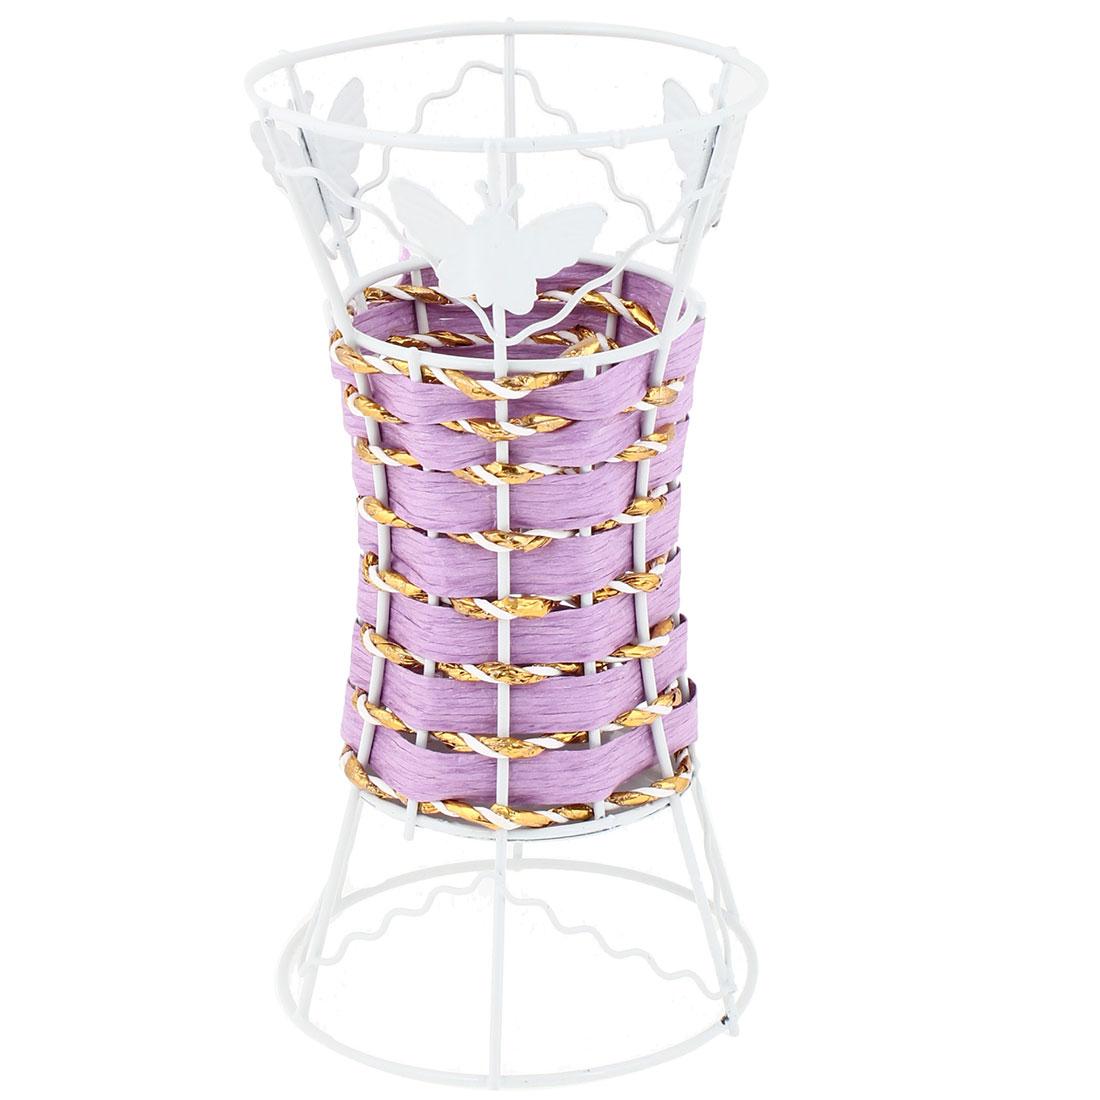 Office Light Purple White Butterfly Decor Vase Pencil Eraser Basket Holder